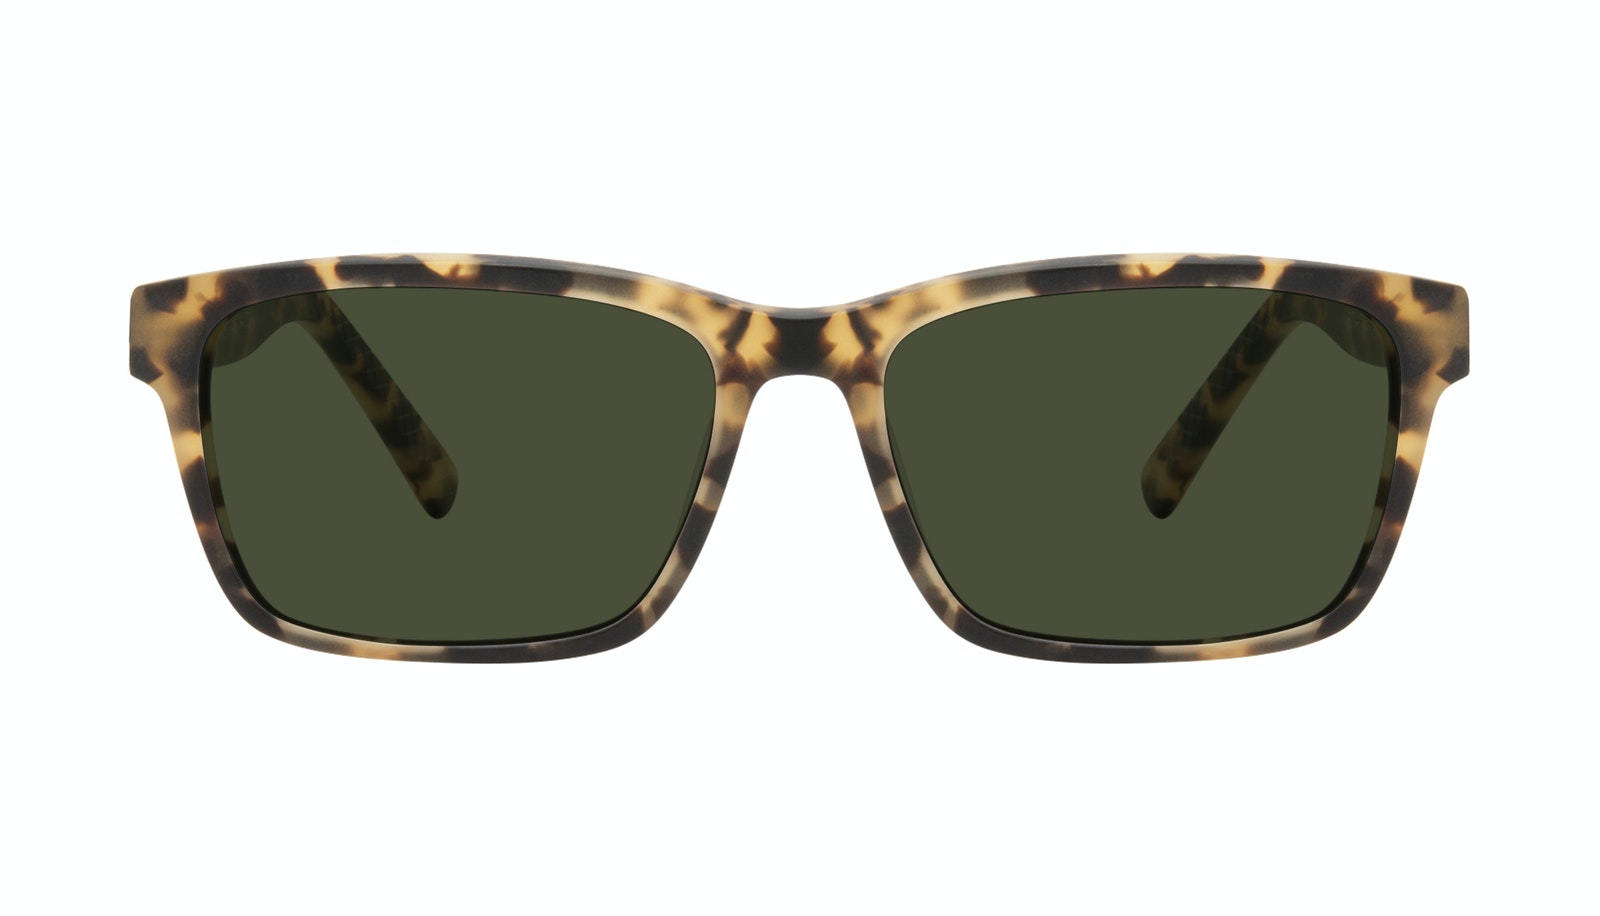 Affordable Fashion Glasses Square Sunglasses Men Chief Tortoise Matte